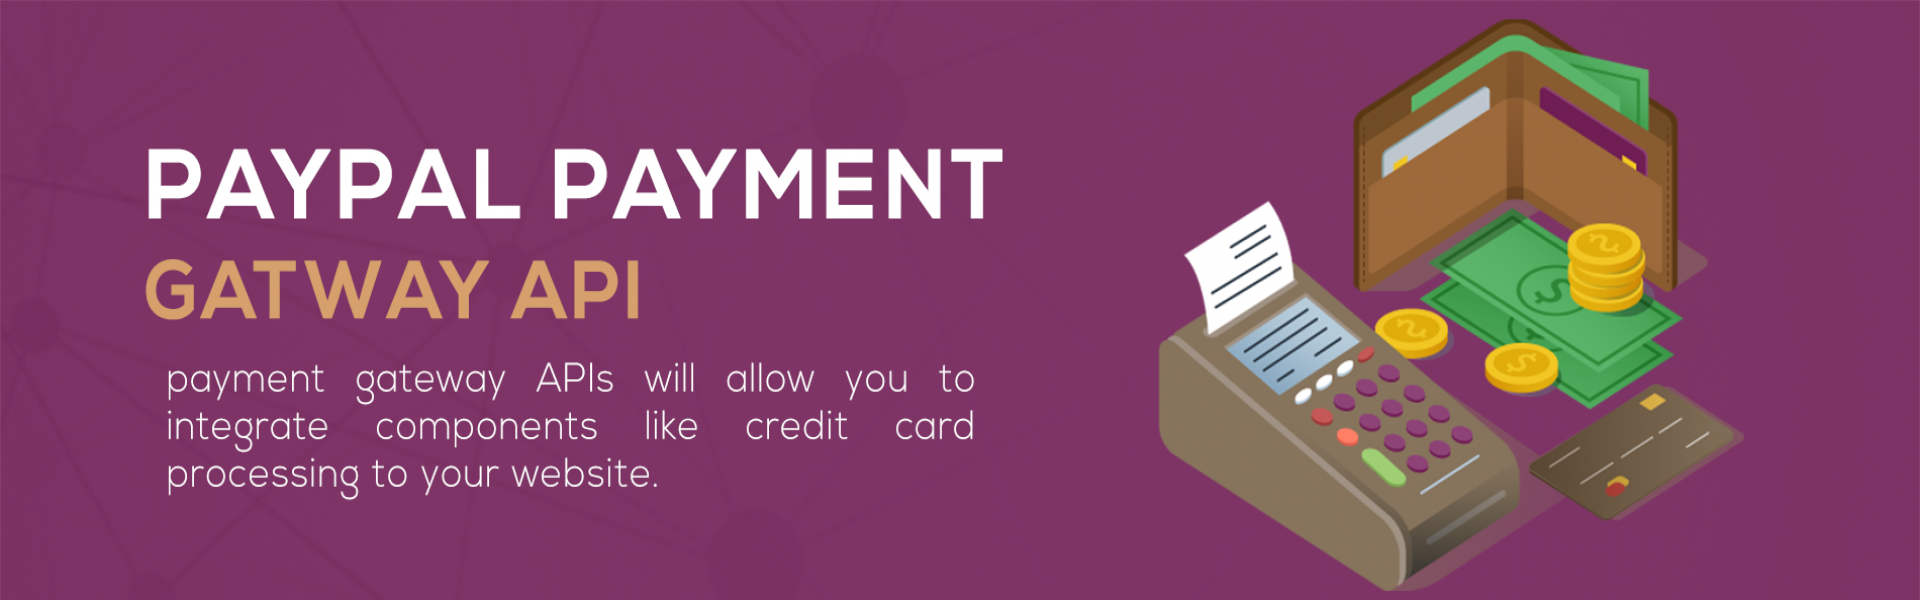 Paypal Payment Gateway API | Payment Gateway Integration